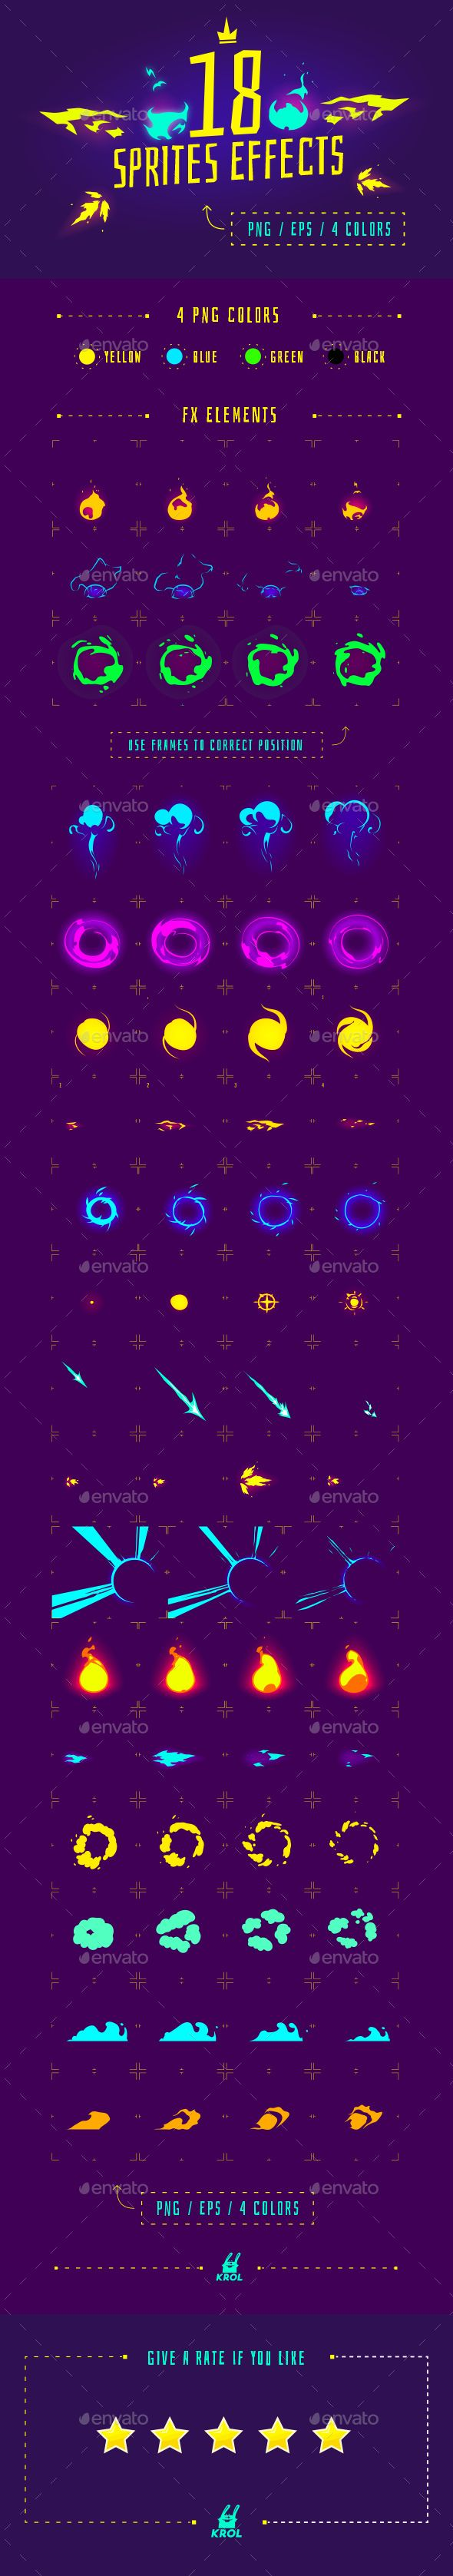 18 Sprite Effects — Vector EPS #fx #explosion • Available here → https://graphicriver.net/item/18-sprite-effects/17434850?ref=pxcr